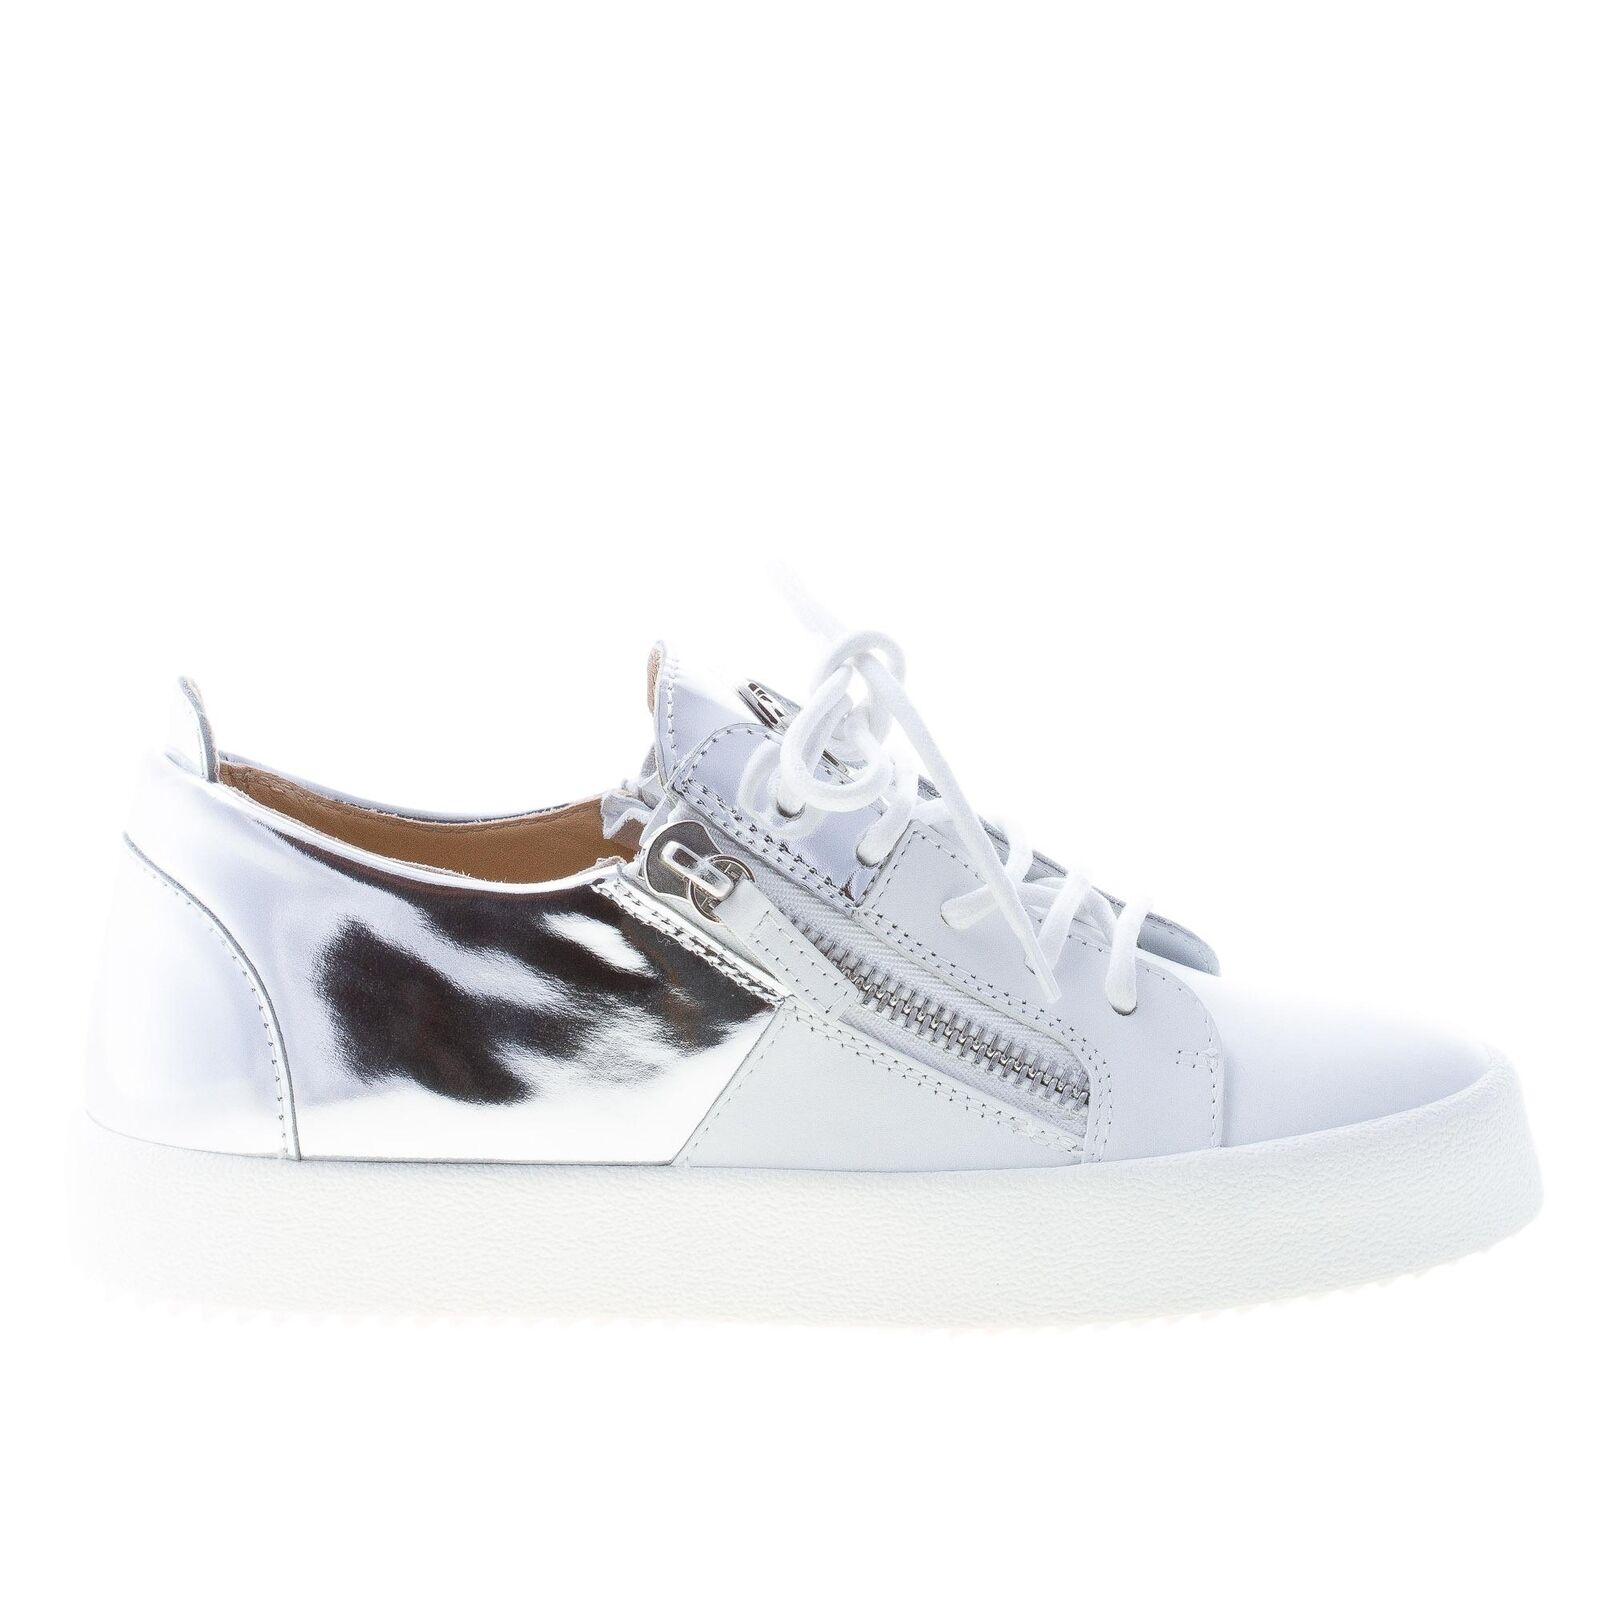 GIUSEPPE ZANOTTI DESIGN women shoes White leather May London sneaker Maxi-zip